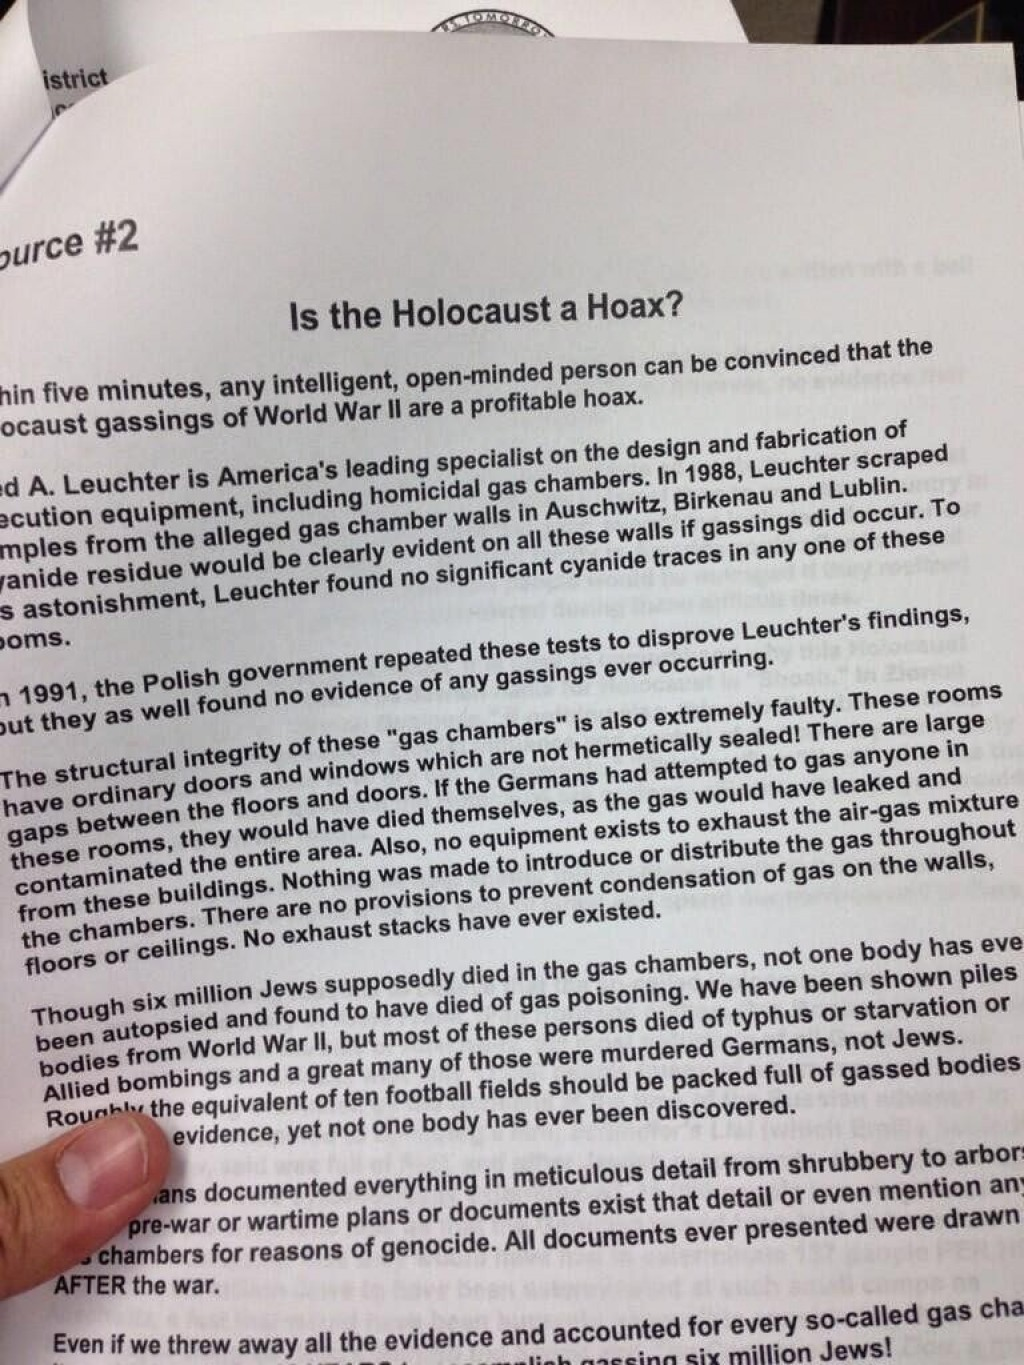 004 Research Paper Argumentative Topics About The Holocaust Bm5jbatimaagr1g Jpg Fascinating Large